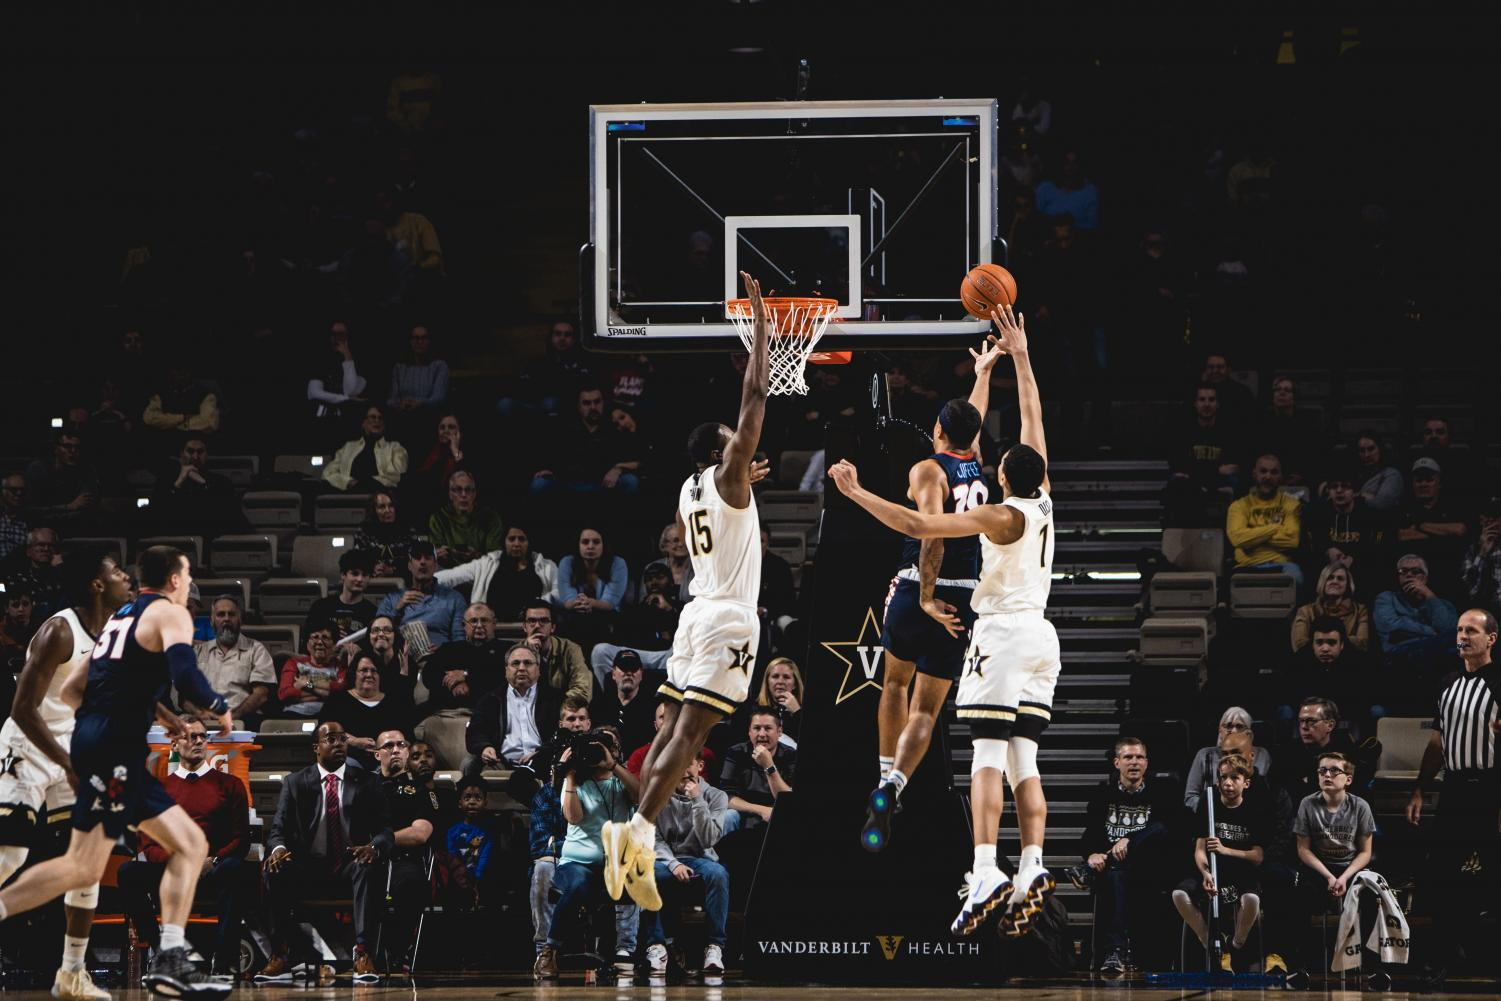 Clevon Brown goes up for a block in the Commodores loss to Liberty on December 14th